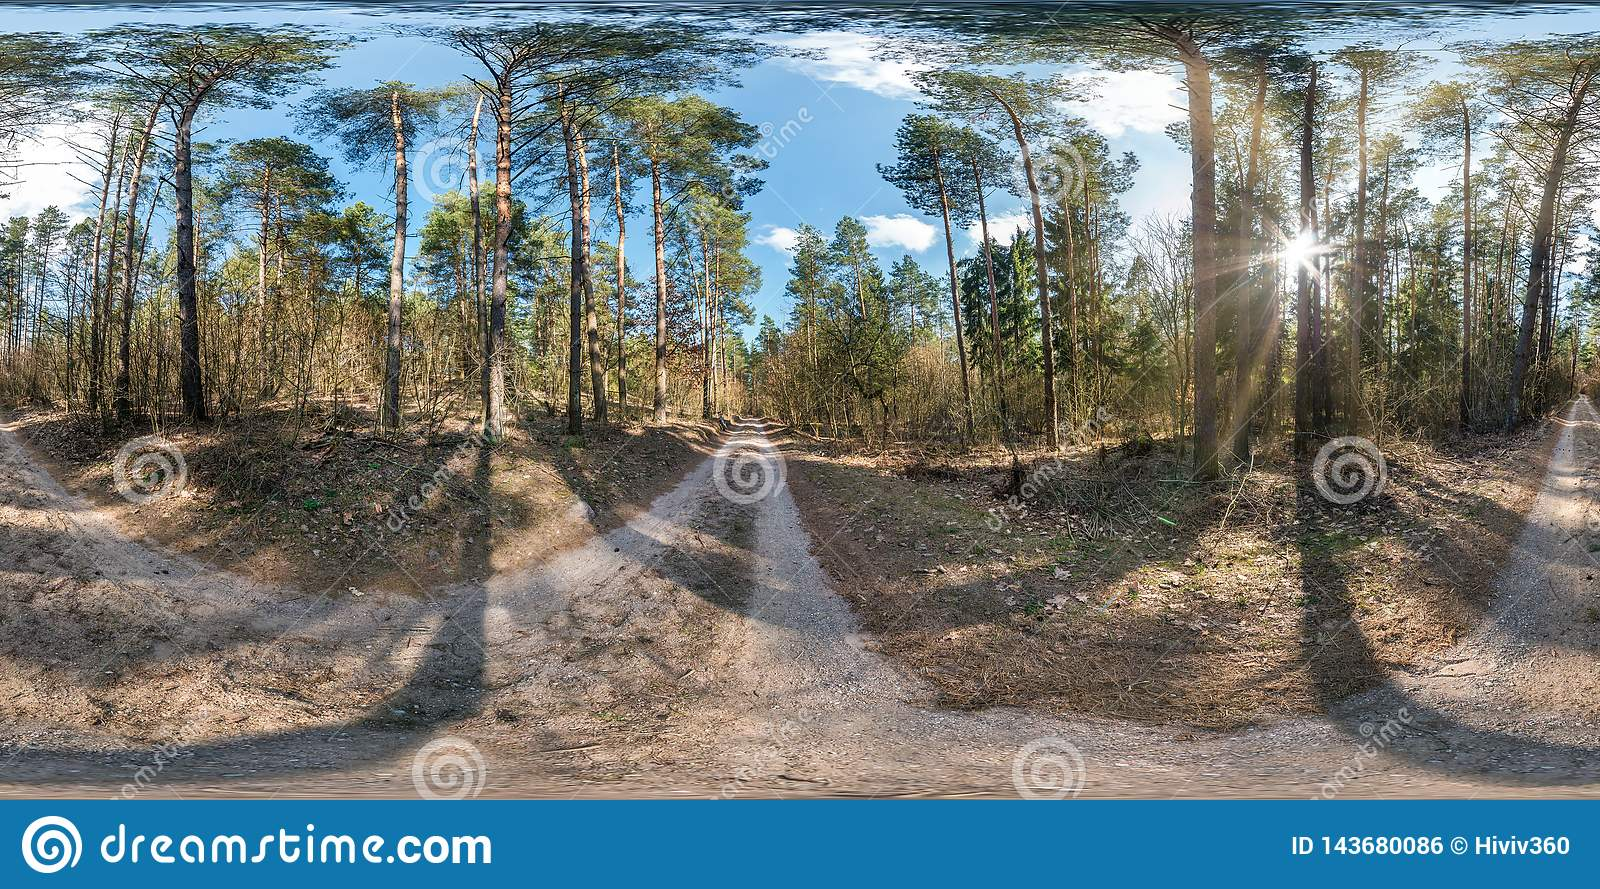 Full spherical hdri panorama 360 degrees angle view on gravel pedestrian footpath and bicycle lane path in pinery forest in sunny